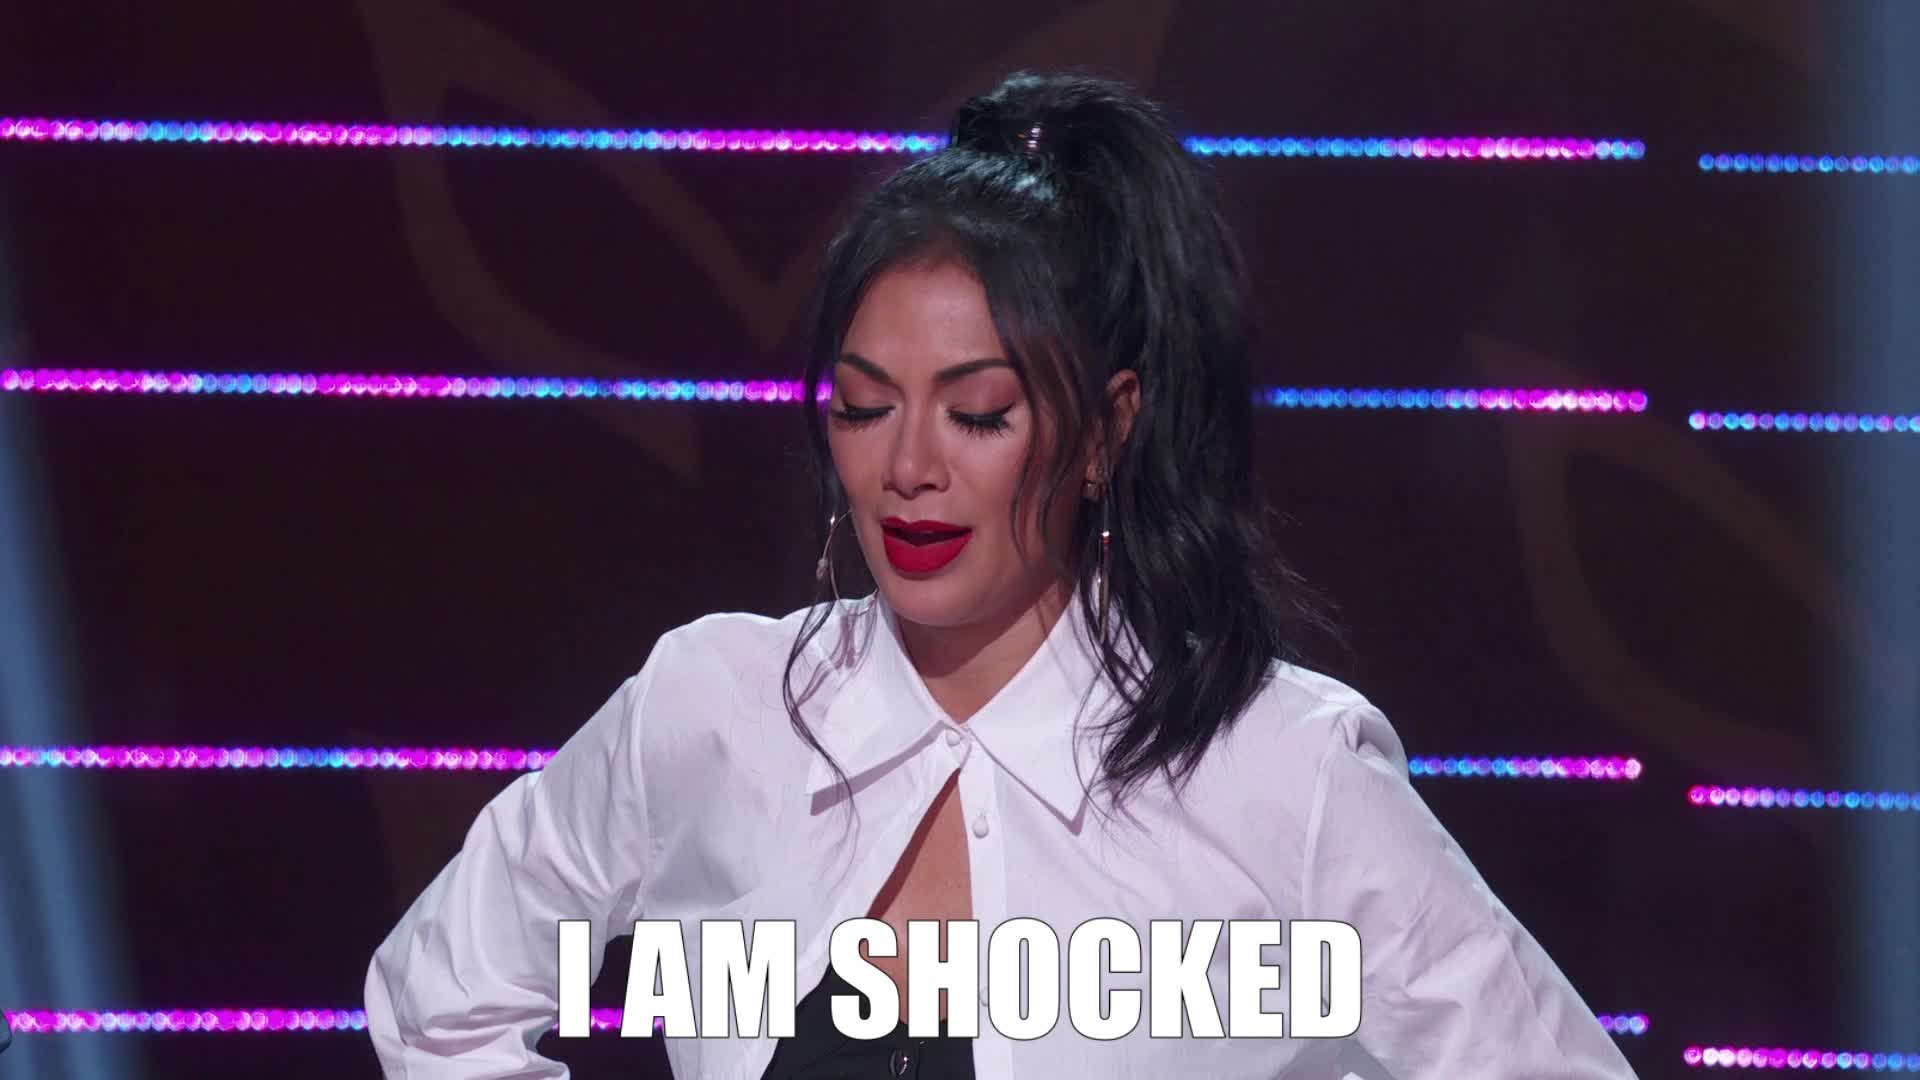 funny, masked singer, nicole scherzinger, omg, shocked, the masked singer, the masked singer on fox, I Am Shocked GIFs